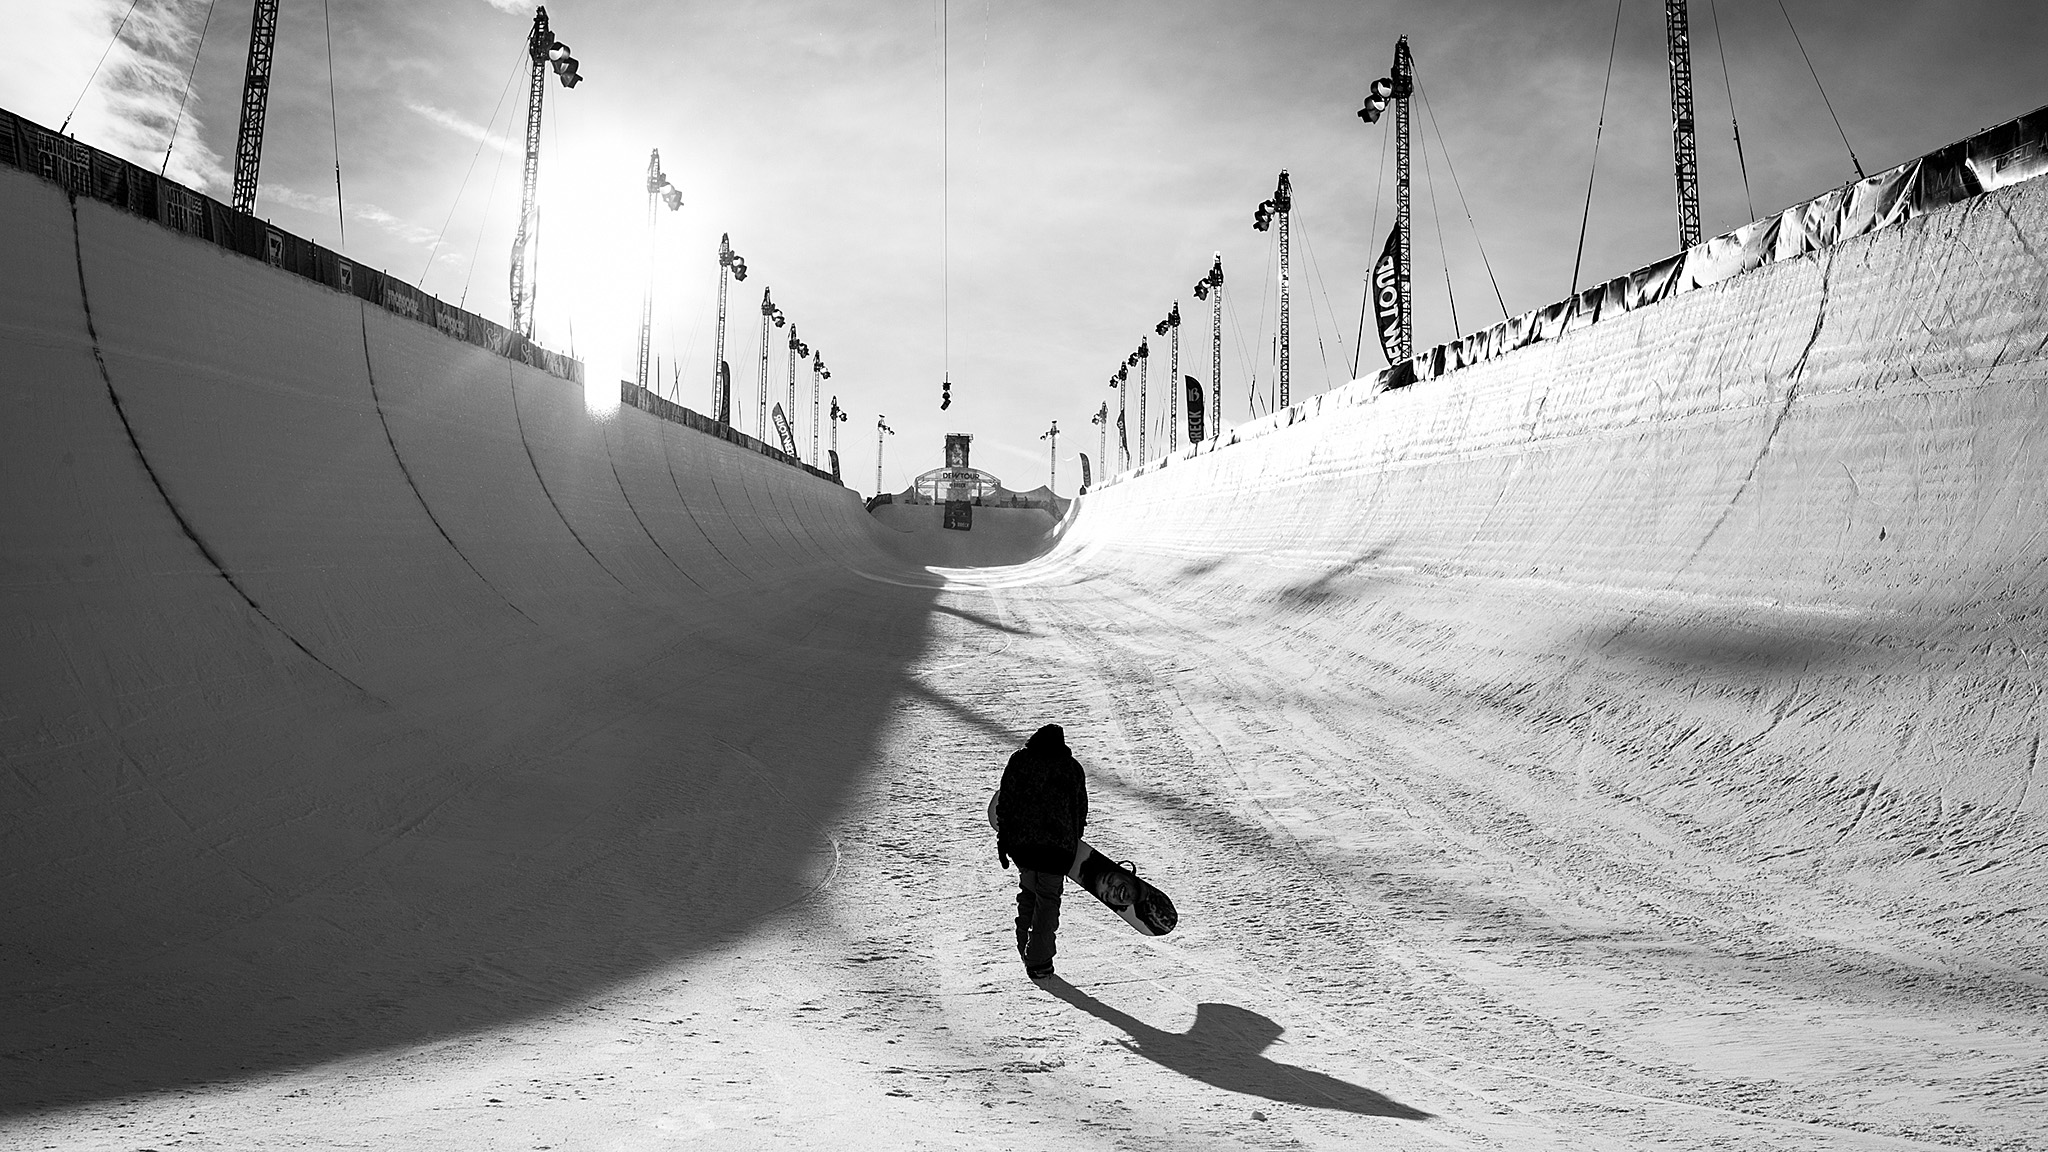 Danny Davis takes a lone hike up the middle of the pipe in Breckenridge after the first Dew Tour and Olympic qualifiers. That day was the start of an amazing season for Danny, says photographer Adam Moran. After the event, he held back to ride a little more in the evening light.brbrAnd after that, he went on to set snowboarding on fire with his switch pipe tricks. If competition seasons had MVPs, Danny Davis might be it this year.